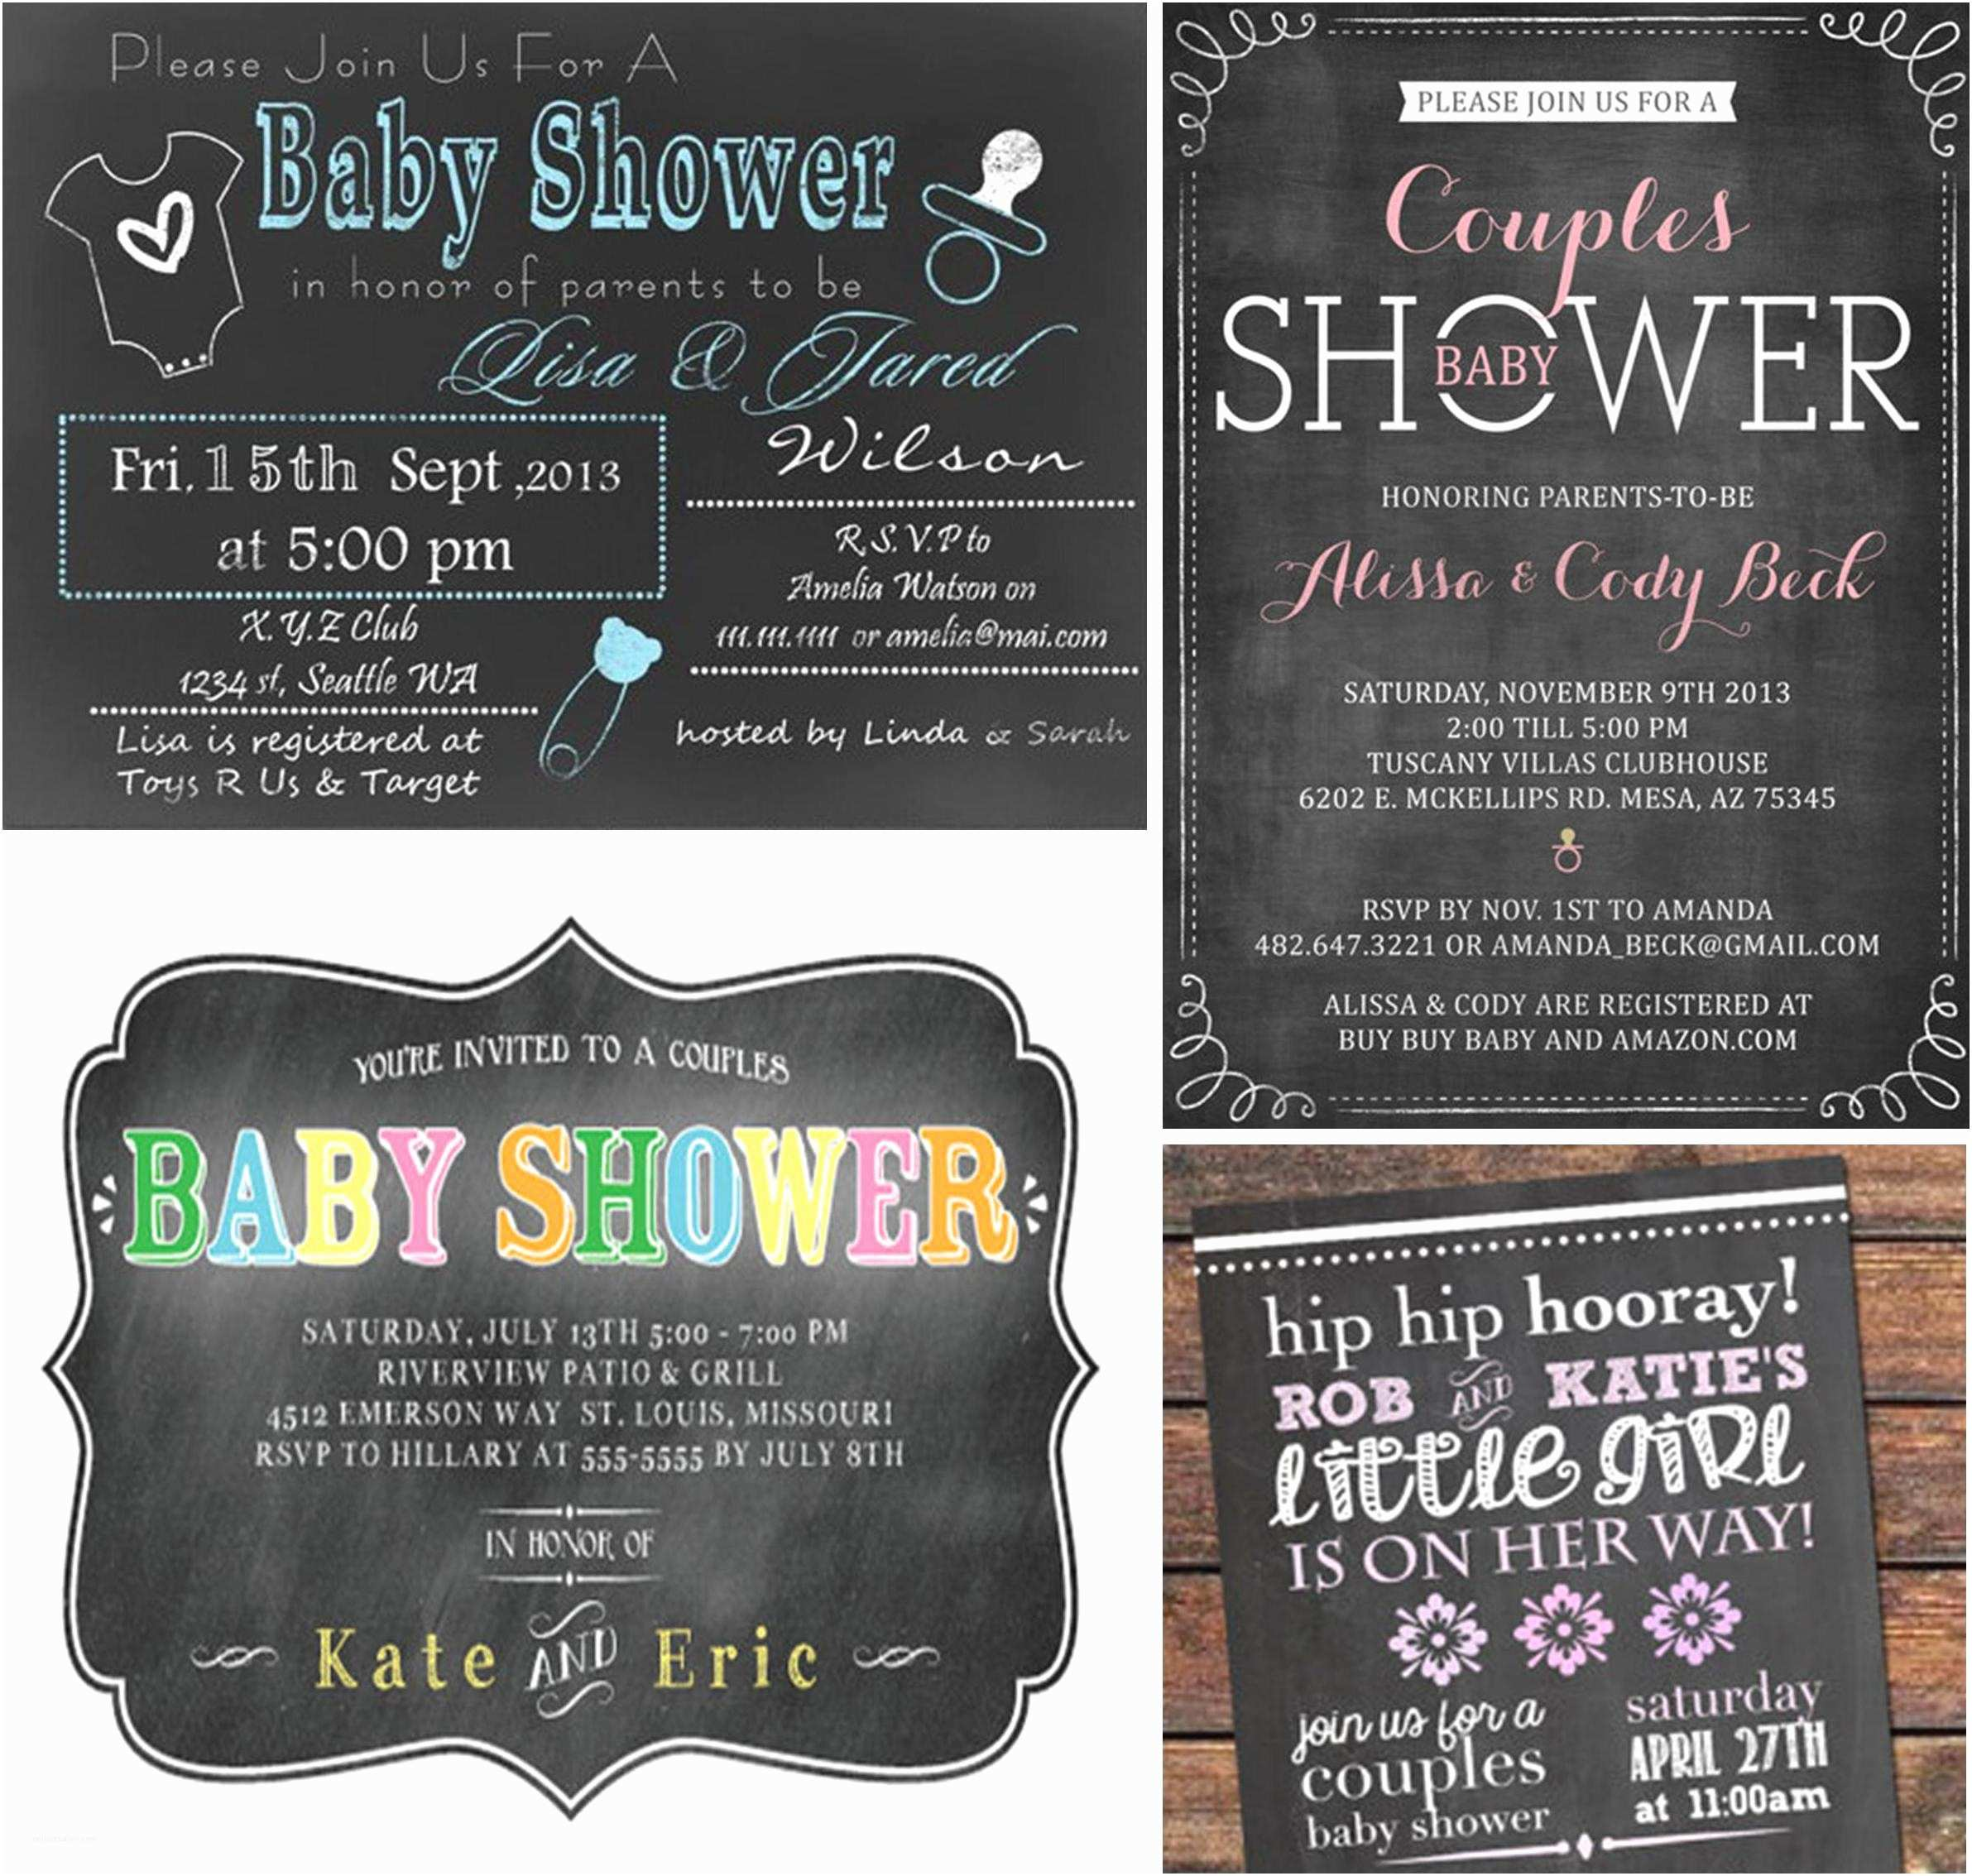 Couples Baby Shower Invitation Wording Couples Baby Shower Invitations